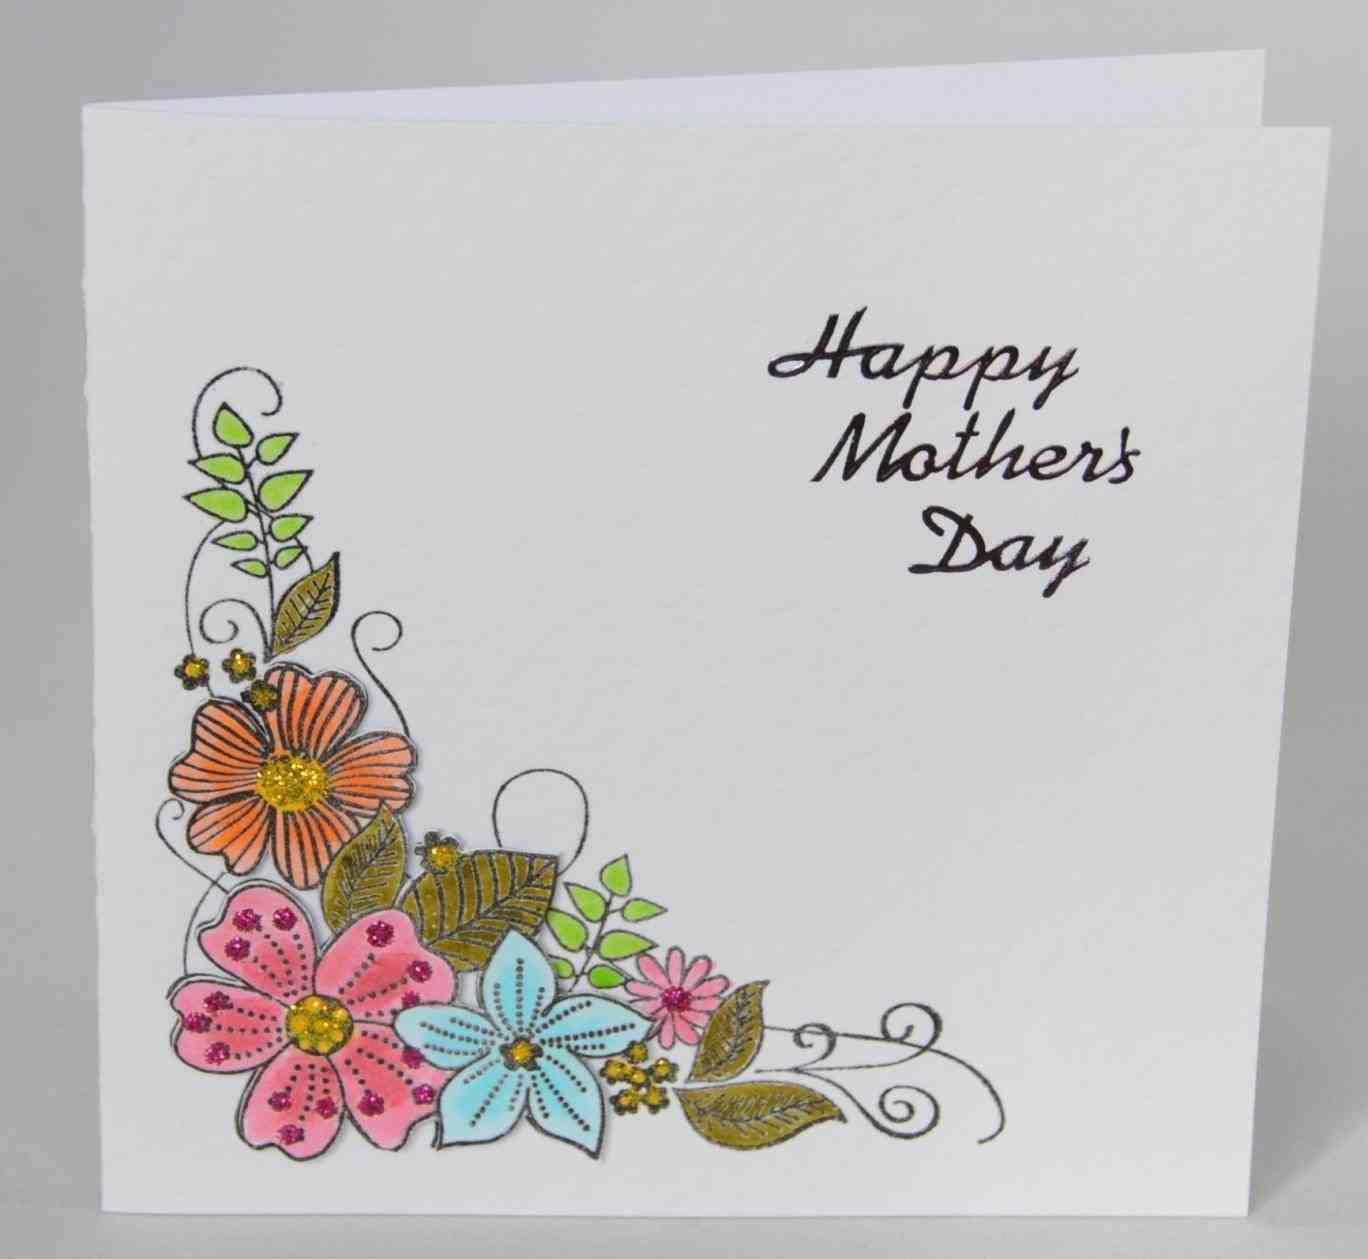 Images Of Homemade Mother S Day Cards Mother S Day Card Happy Mother S Day Card Mom Birthd Birthday Cards For Mother Cards Handmade Birthday Card Template